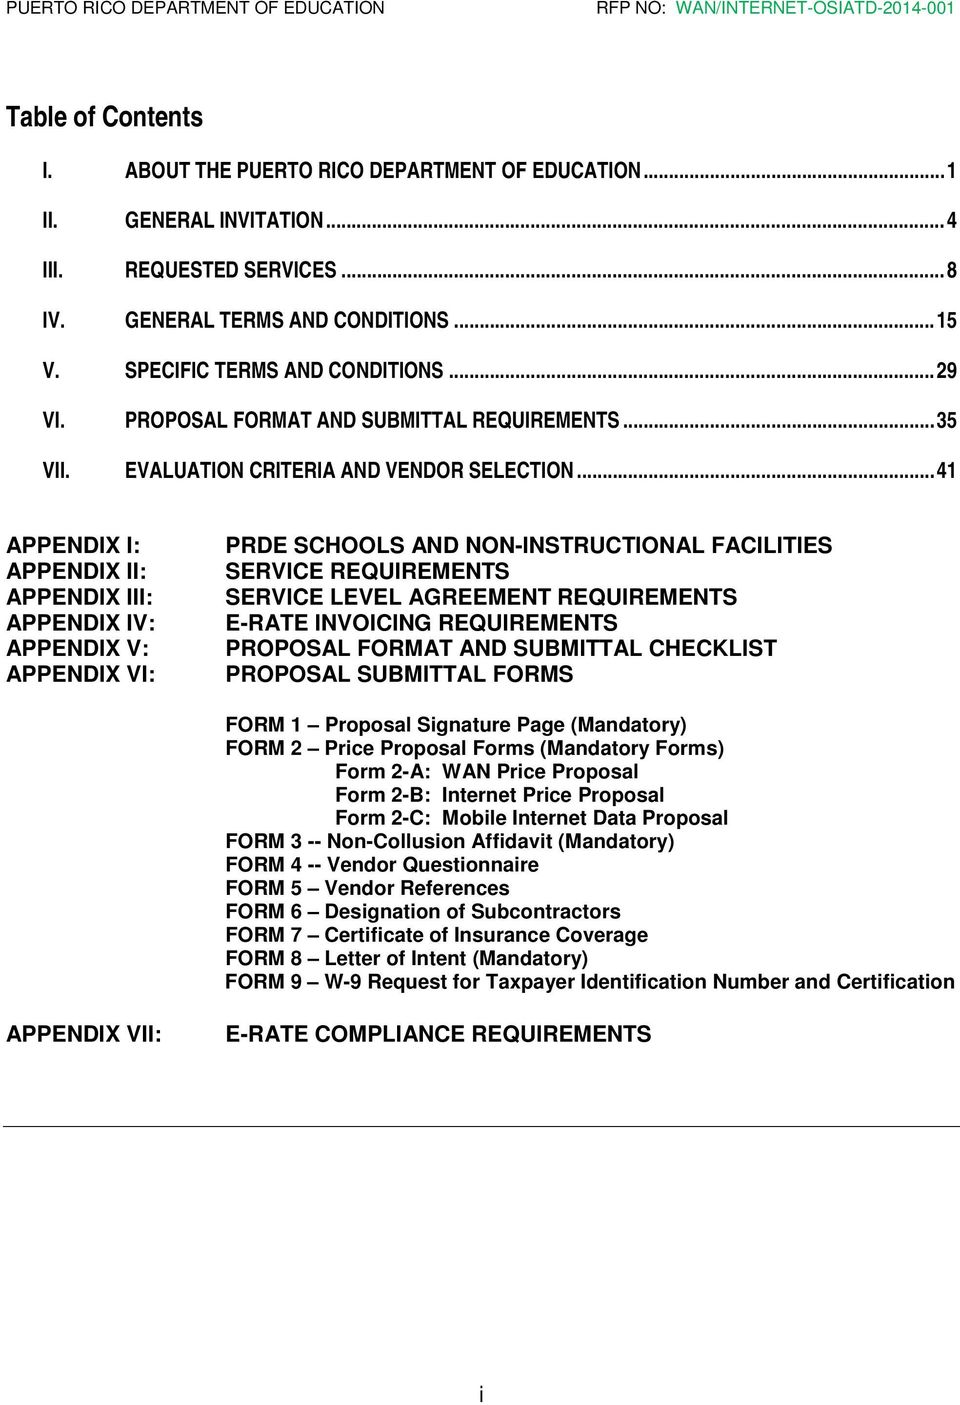 .. 41 APPENDIX I: APPENDIX II: APPENDIX III: APPENDIX IV: APPENDIX V: APPENDIX VI: PRDE SCHOOLS AND NON-INSTRUCTIONAL FACILITIES SERVICE REQUIREMENTS SERVICE LEVEL AGREEMENT REQUIREMENTS E-RATE